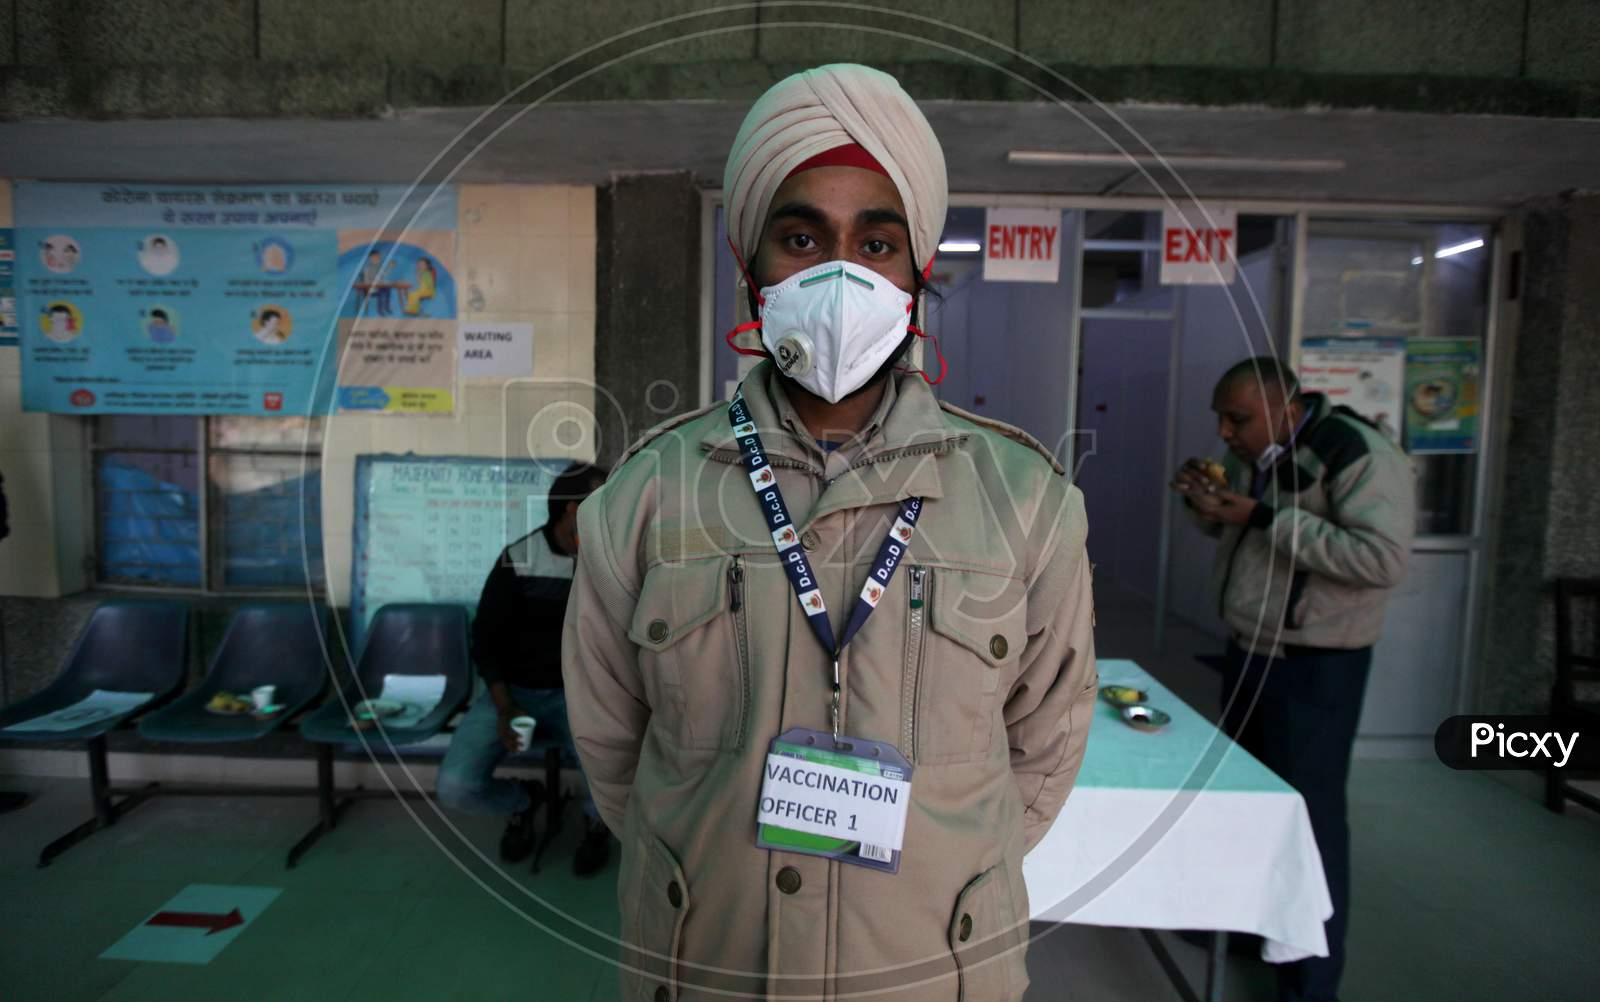 A Worker stands outside a vaccination center set up at a MCD maternity home ahead of a nationwide trial of a Covid-19 vaccine delivery system in New Delhi, India, on, Jan 1, 2021. India will test its Covid-19 vaccine delivery system with a nationwide trial on Jan 2